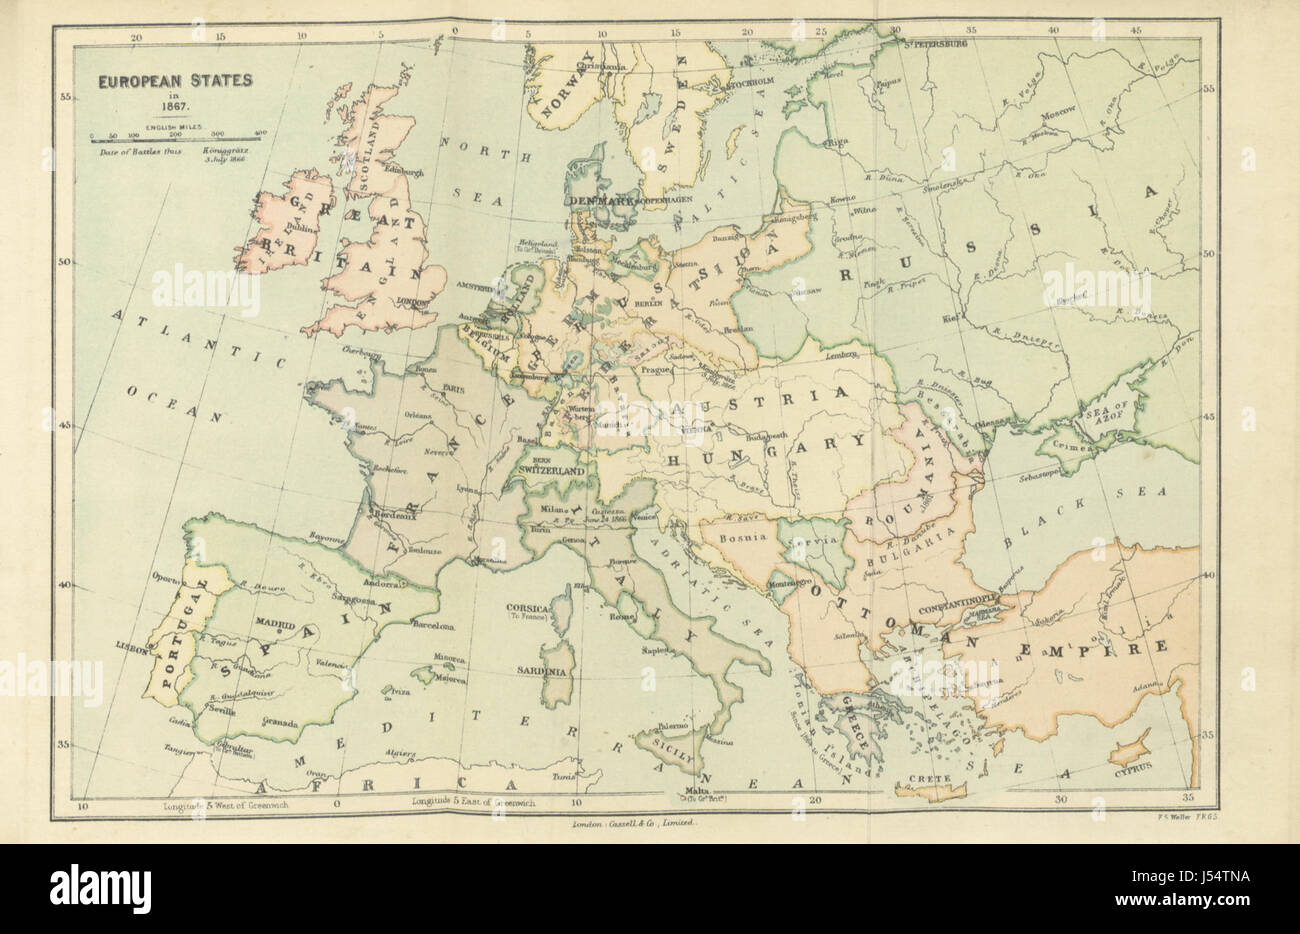 A History of Modern Europe ... With maps Stock Photo: 140863446 - Alamy